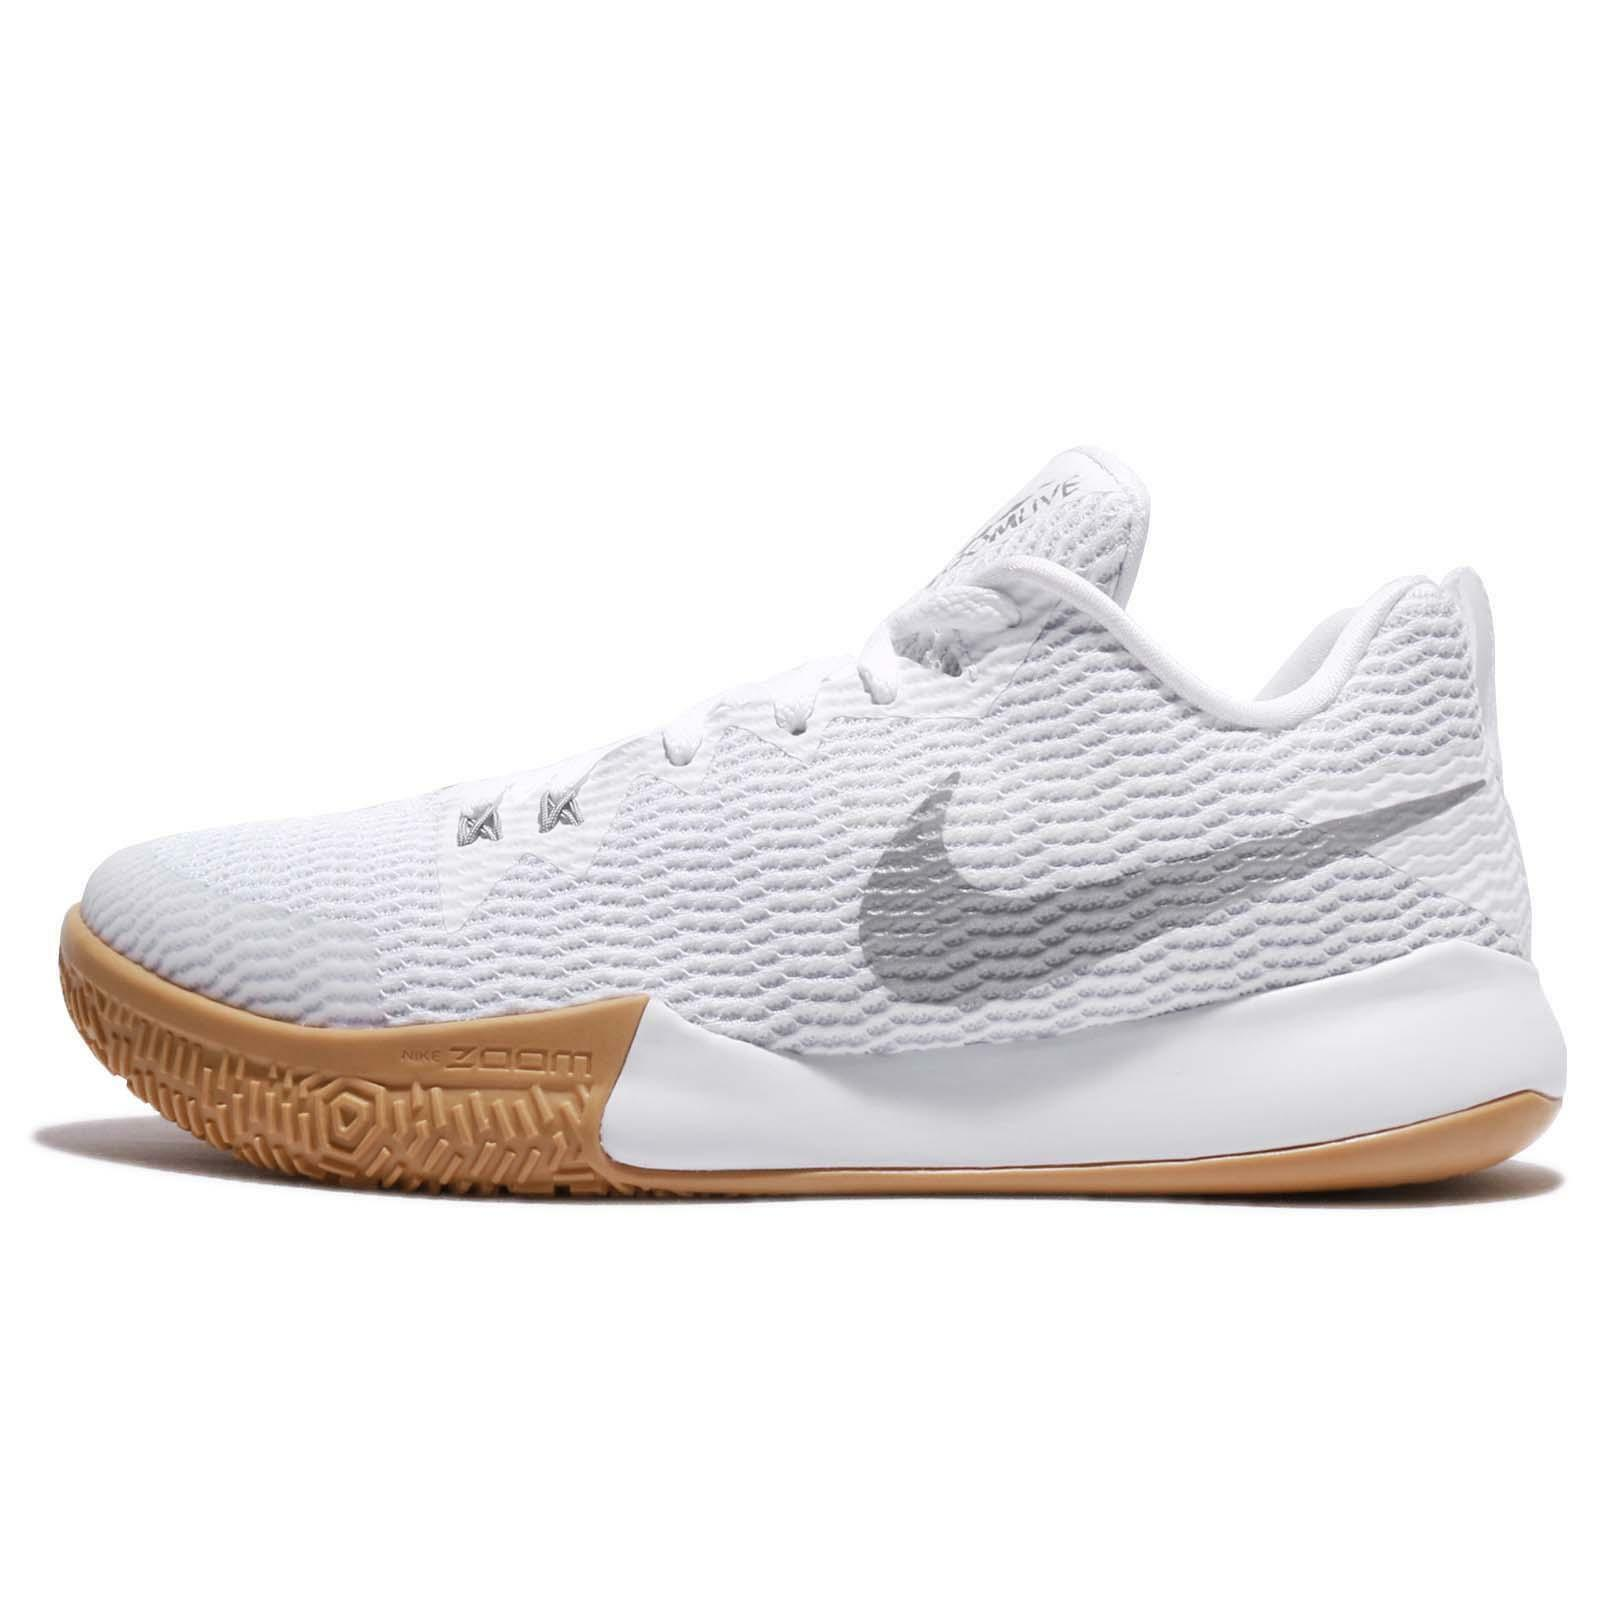 Nike Shoe Zoom LIVE II EP Hombre Basketball Shoe Nike ah7567 TEMPORADA 100 confortable despacho venta 9c8e69